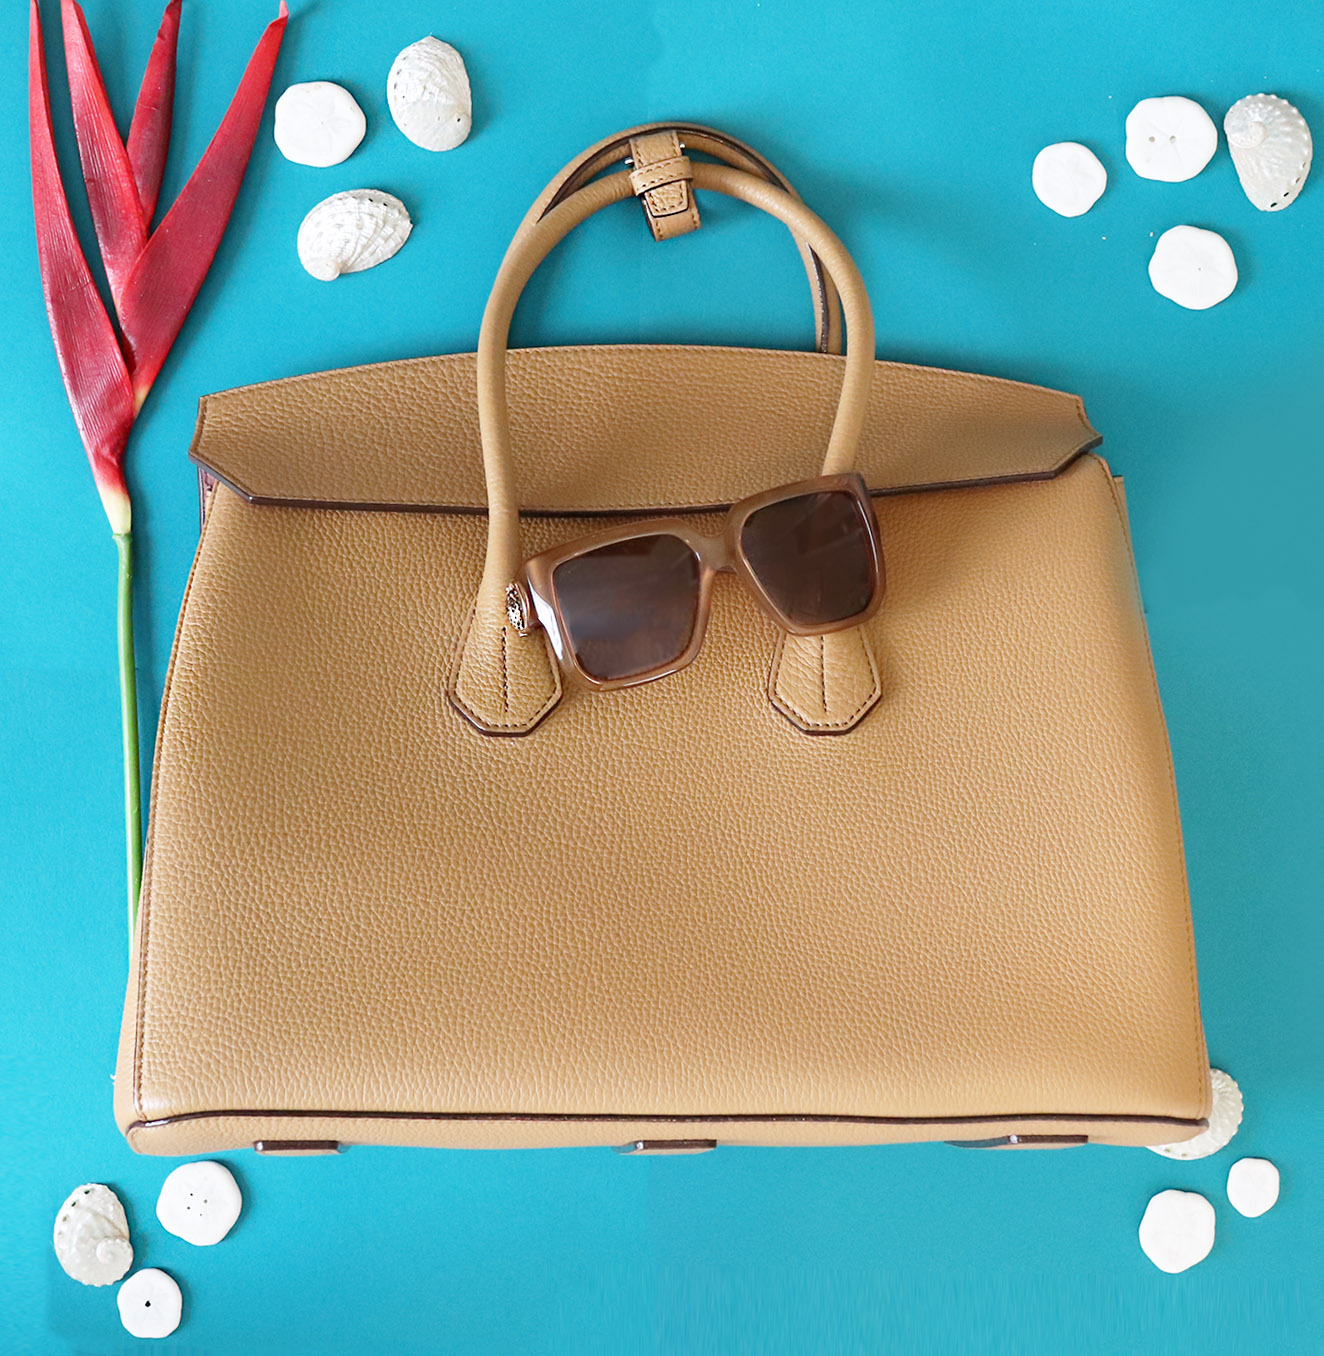 Buckle the sides in to create a new bag shape for spring and summer.